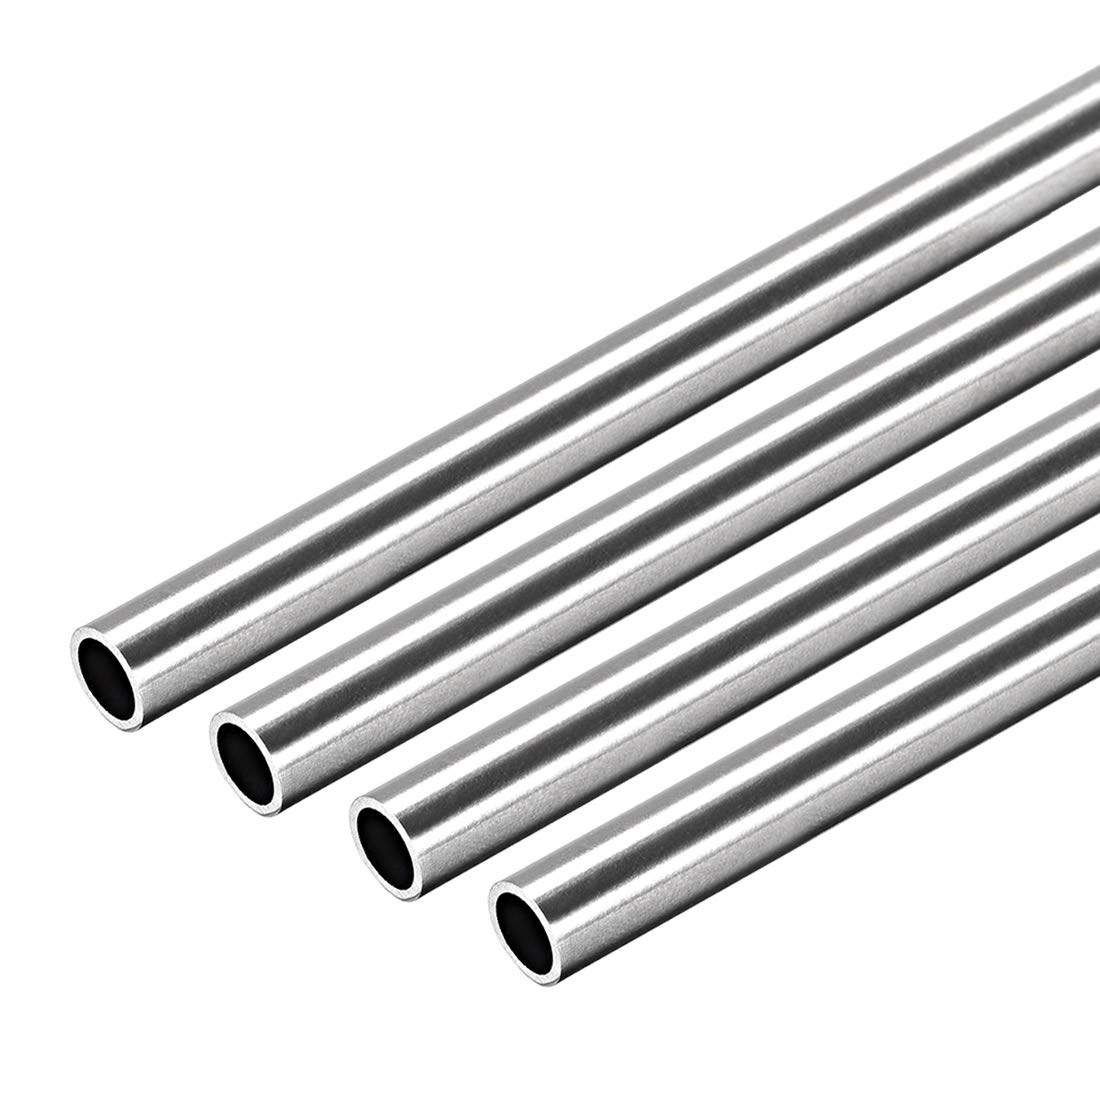 """3//8/""""  Stainless Steel Rod Bar  Round 304   12/"""" long   5 Pcs"""